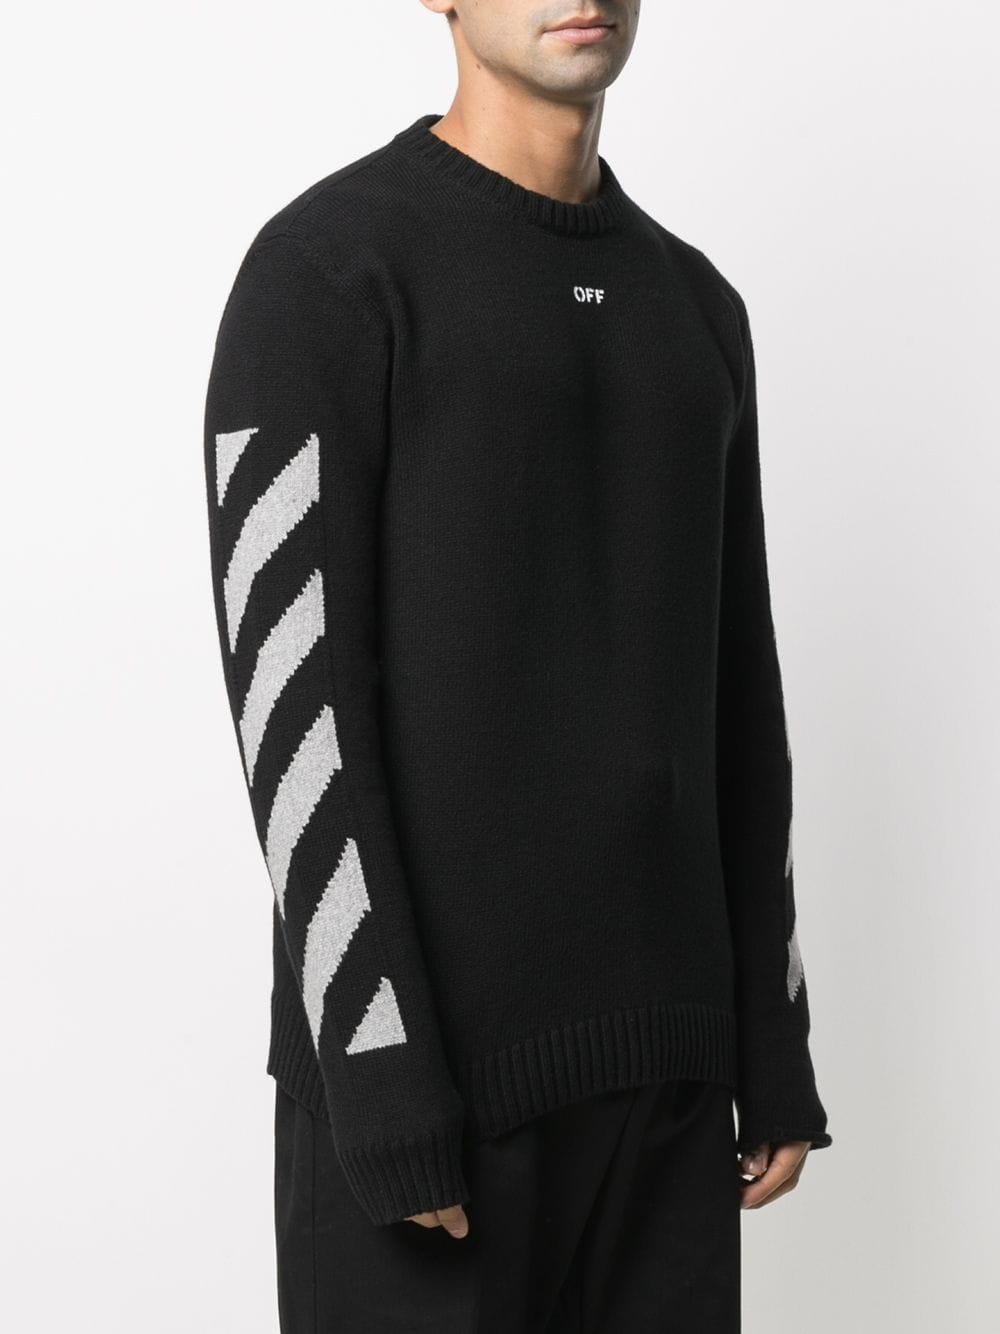 OFF WHITE MEN ARROW CREWNECK SWEATER